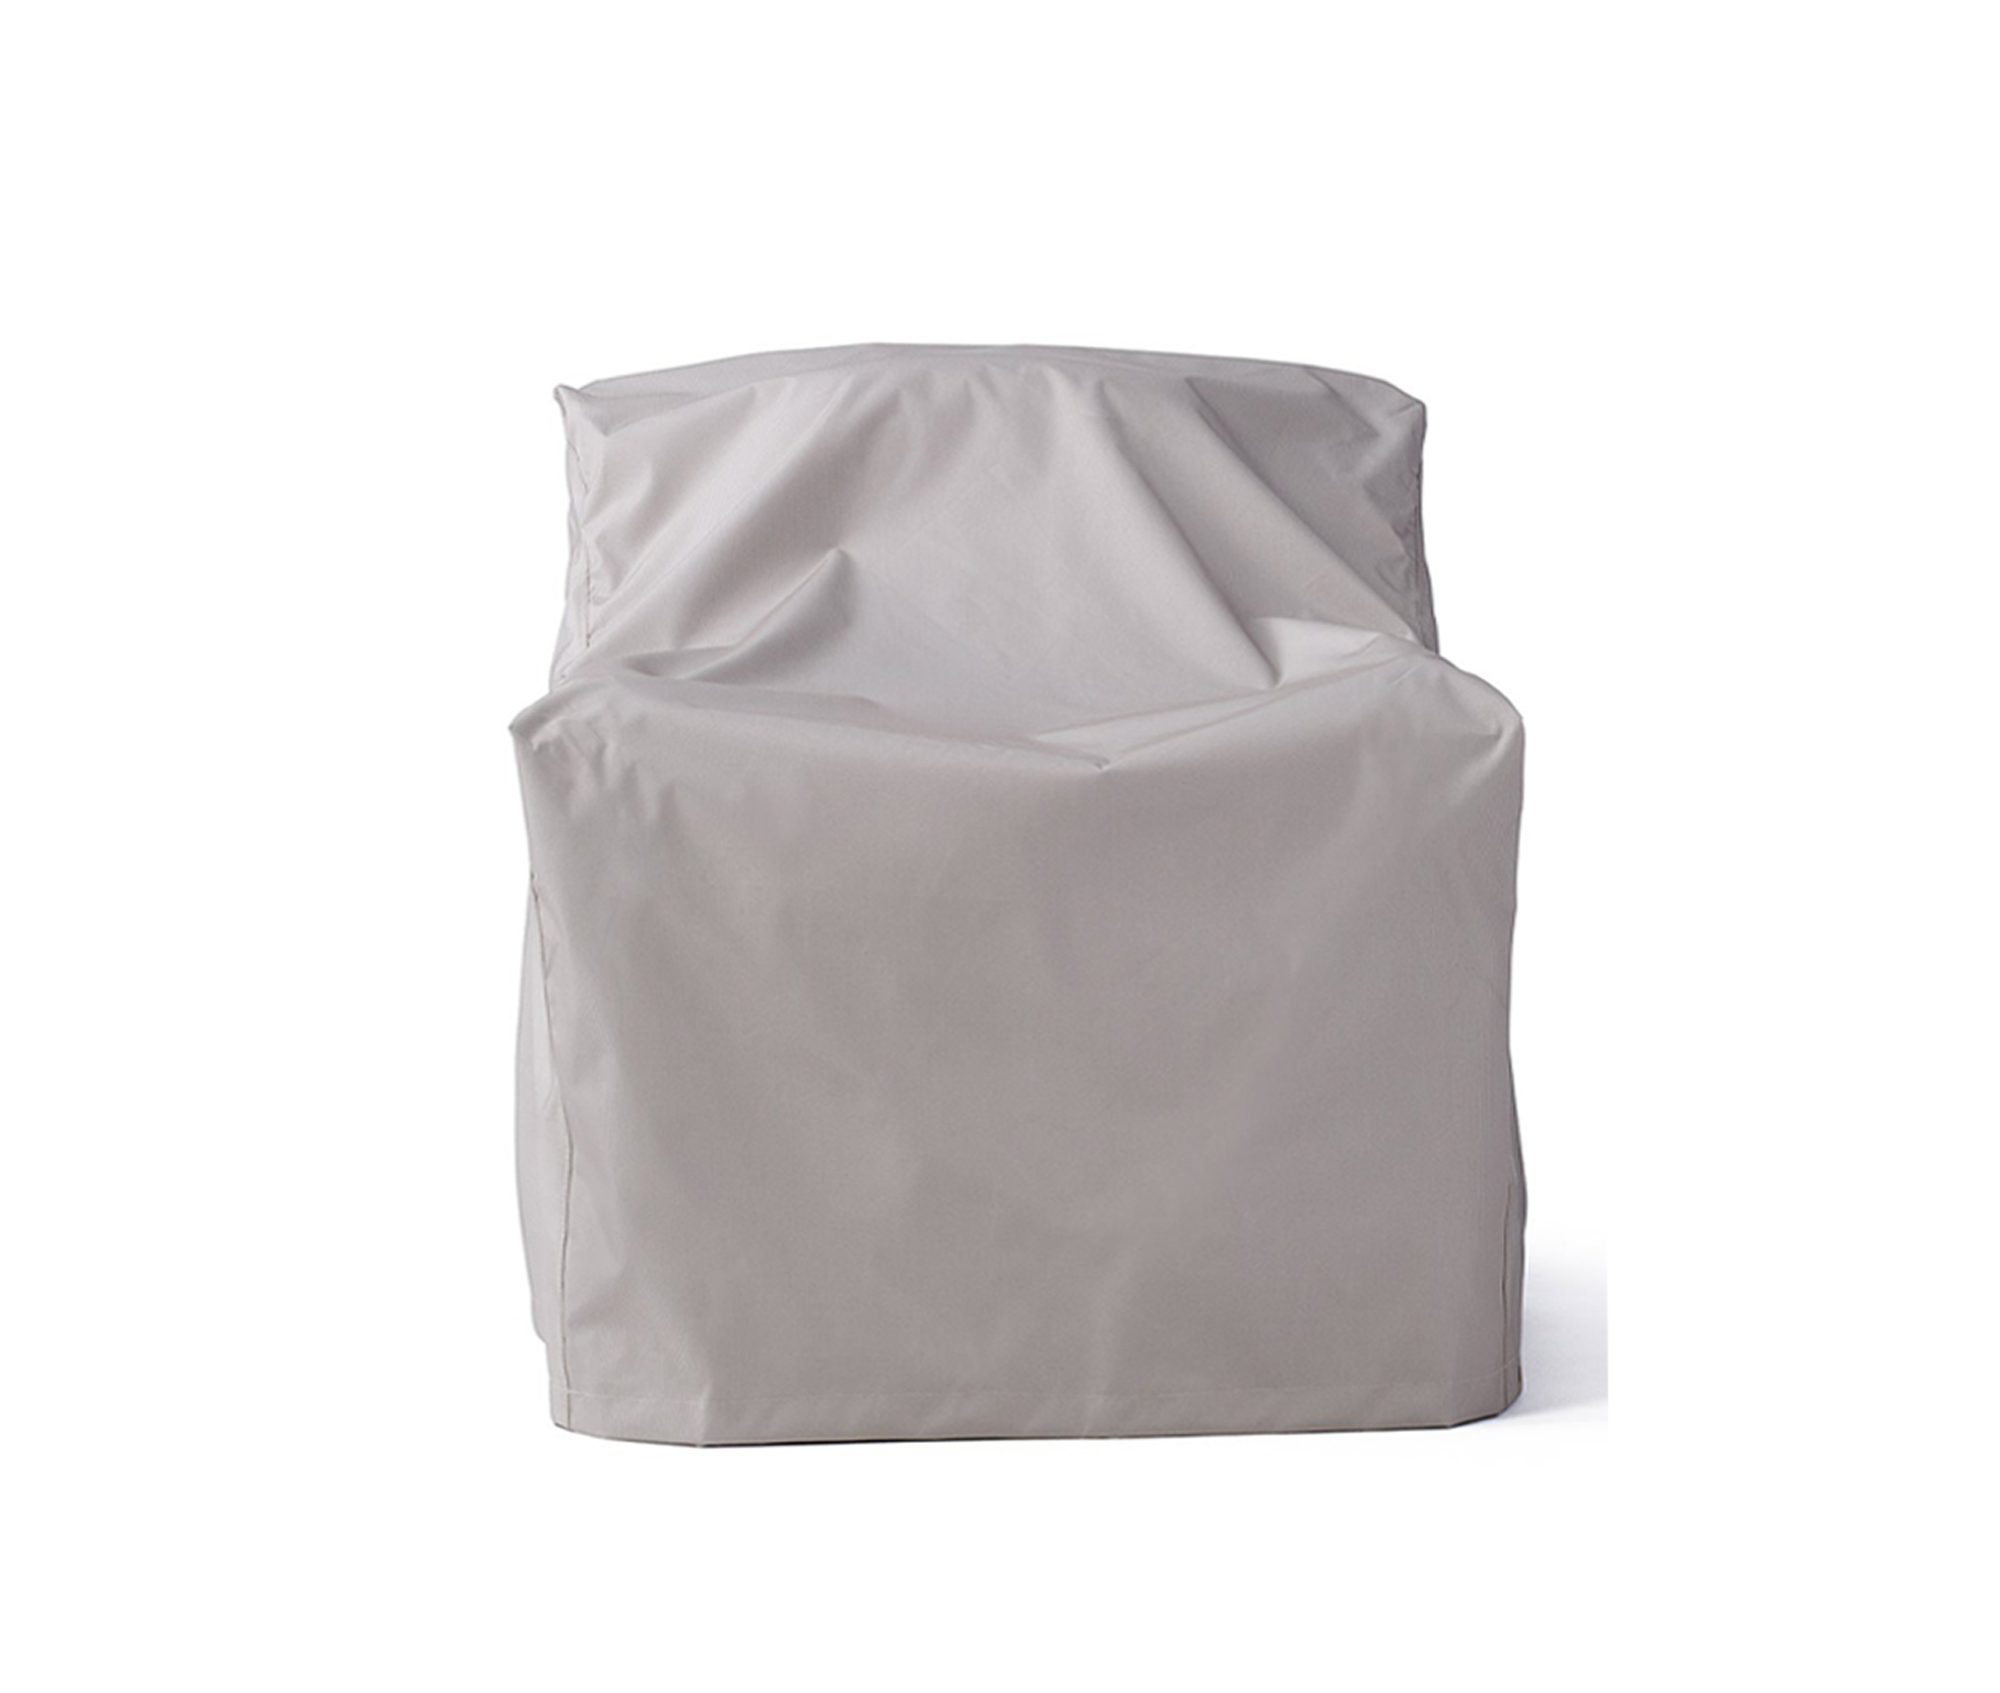 Armless Chair Insert Covers